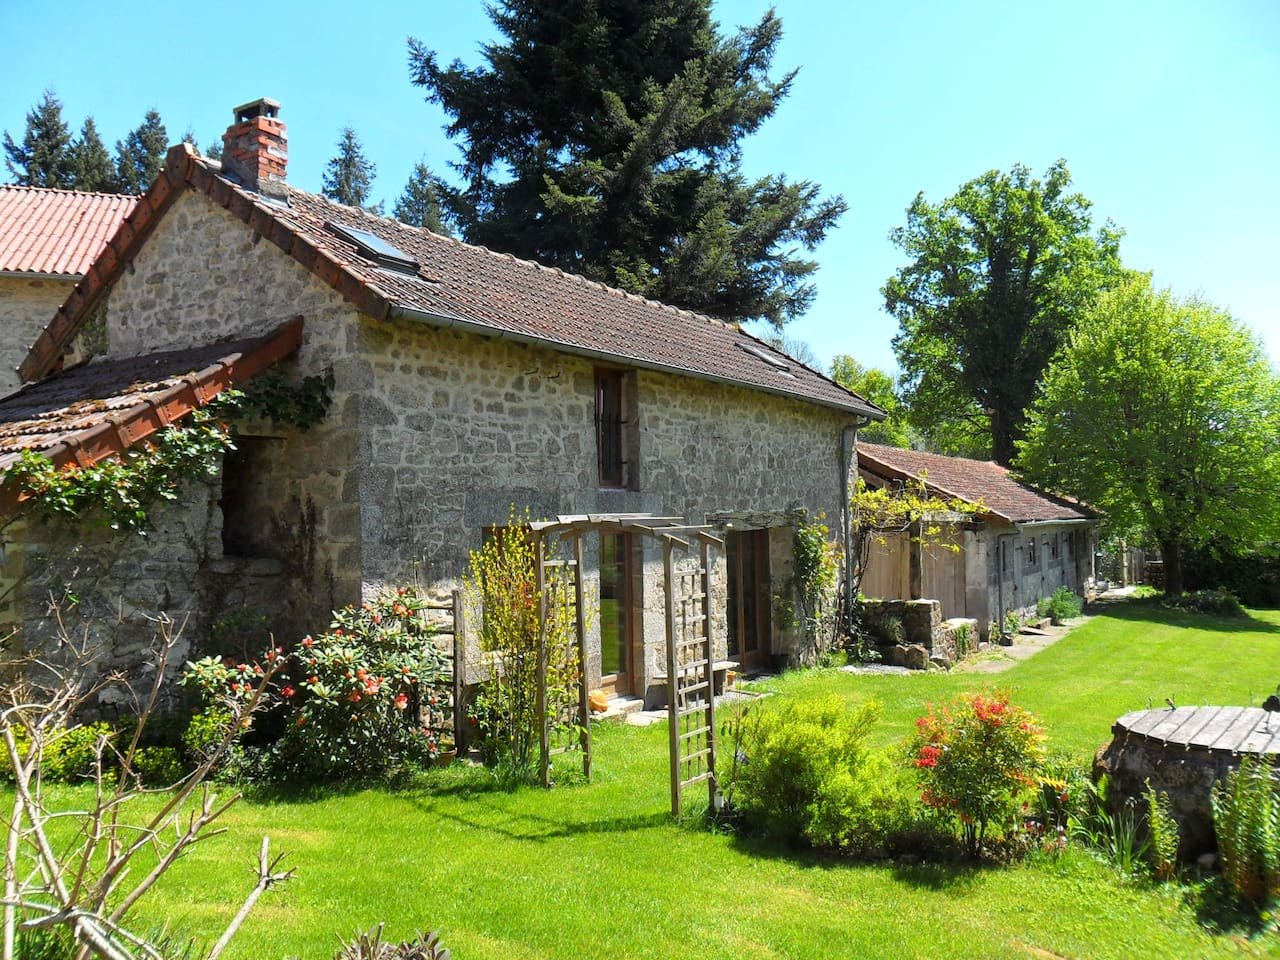 Gite, Le Chardon.  On the outskirts of Cheissoux village set in 1 acre of lovely garden with beautiful views across the Limousin countryside.